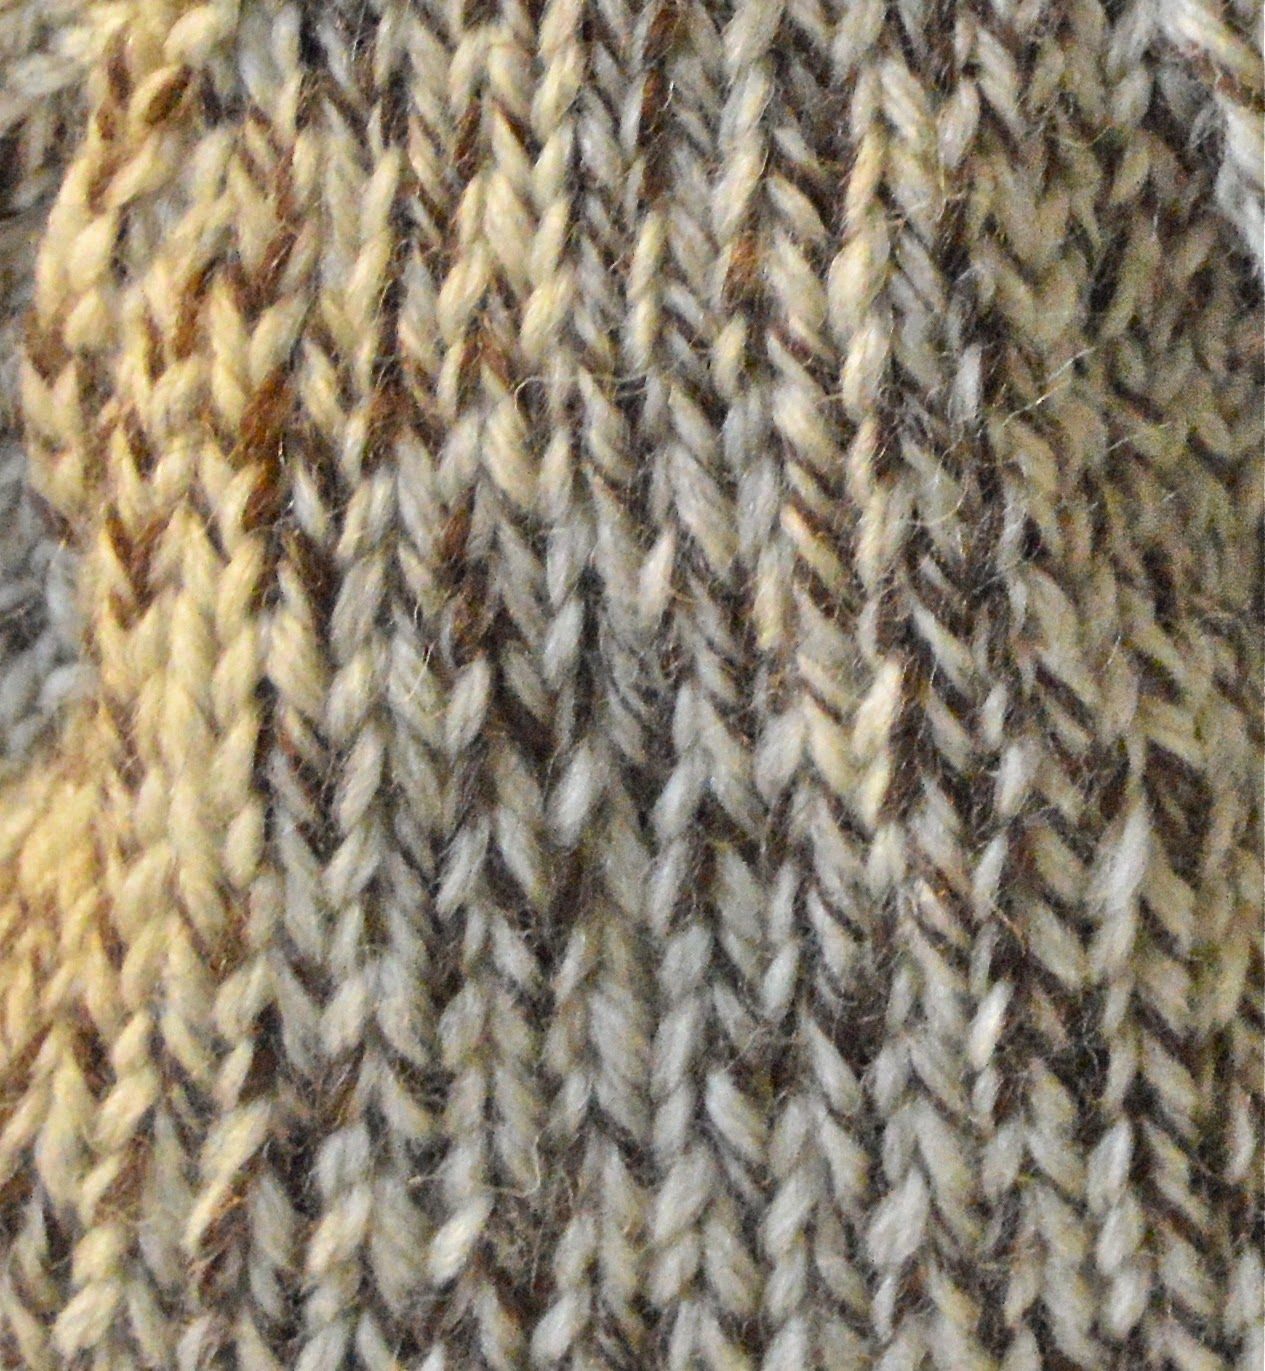 hand knit, jeanniegrayknits.etsy.com